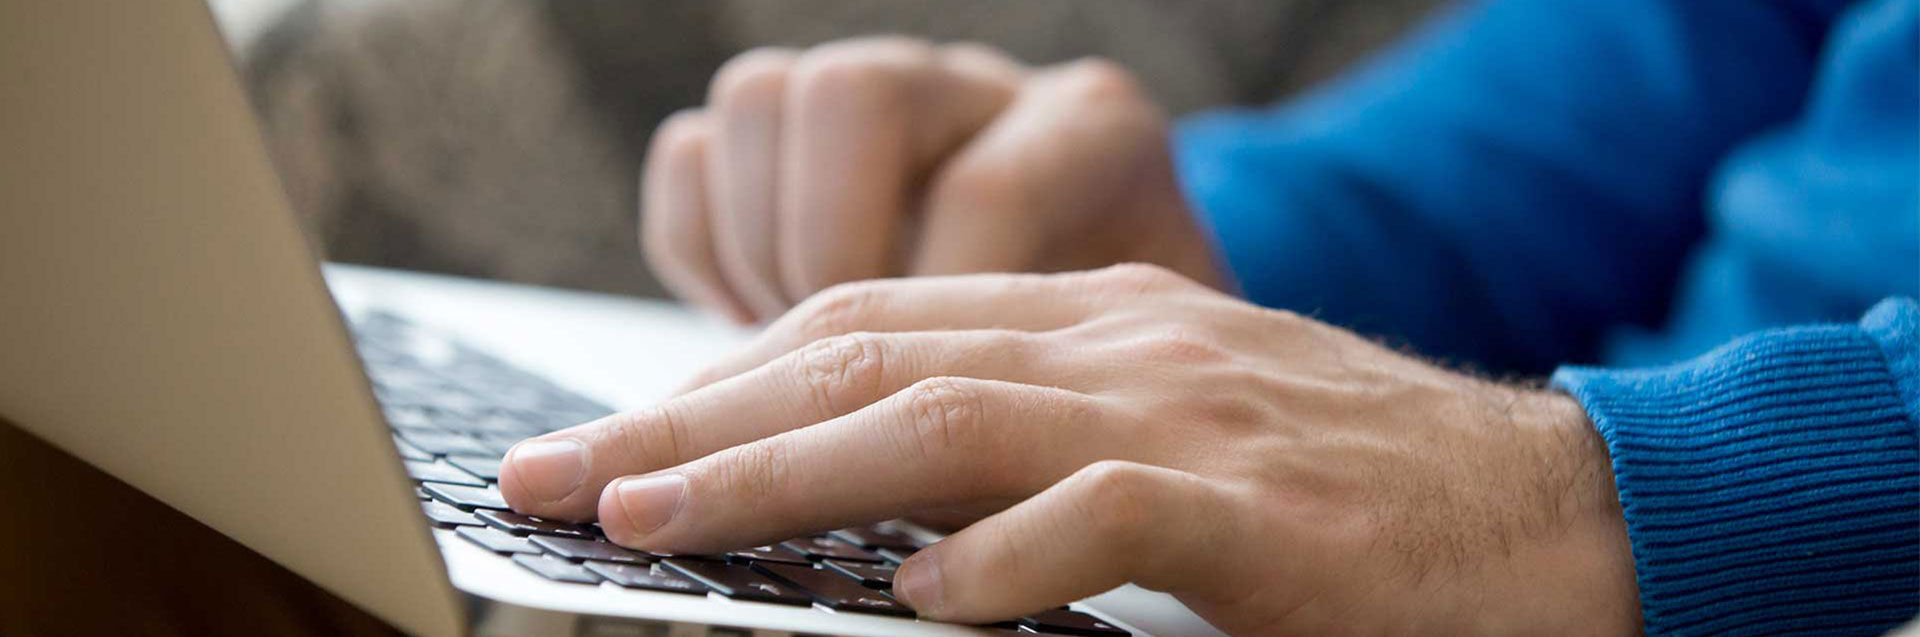 Male hands with laptop close-up